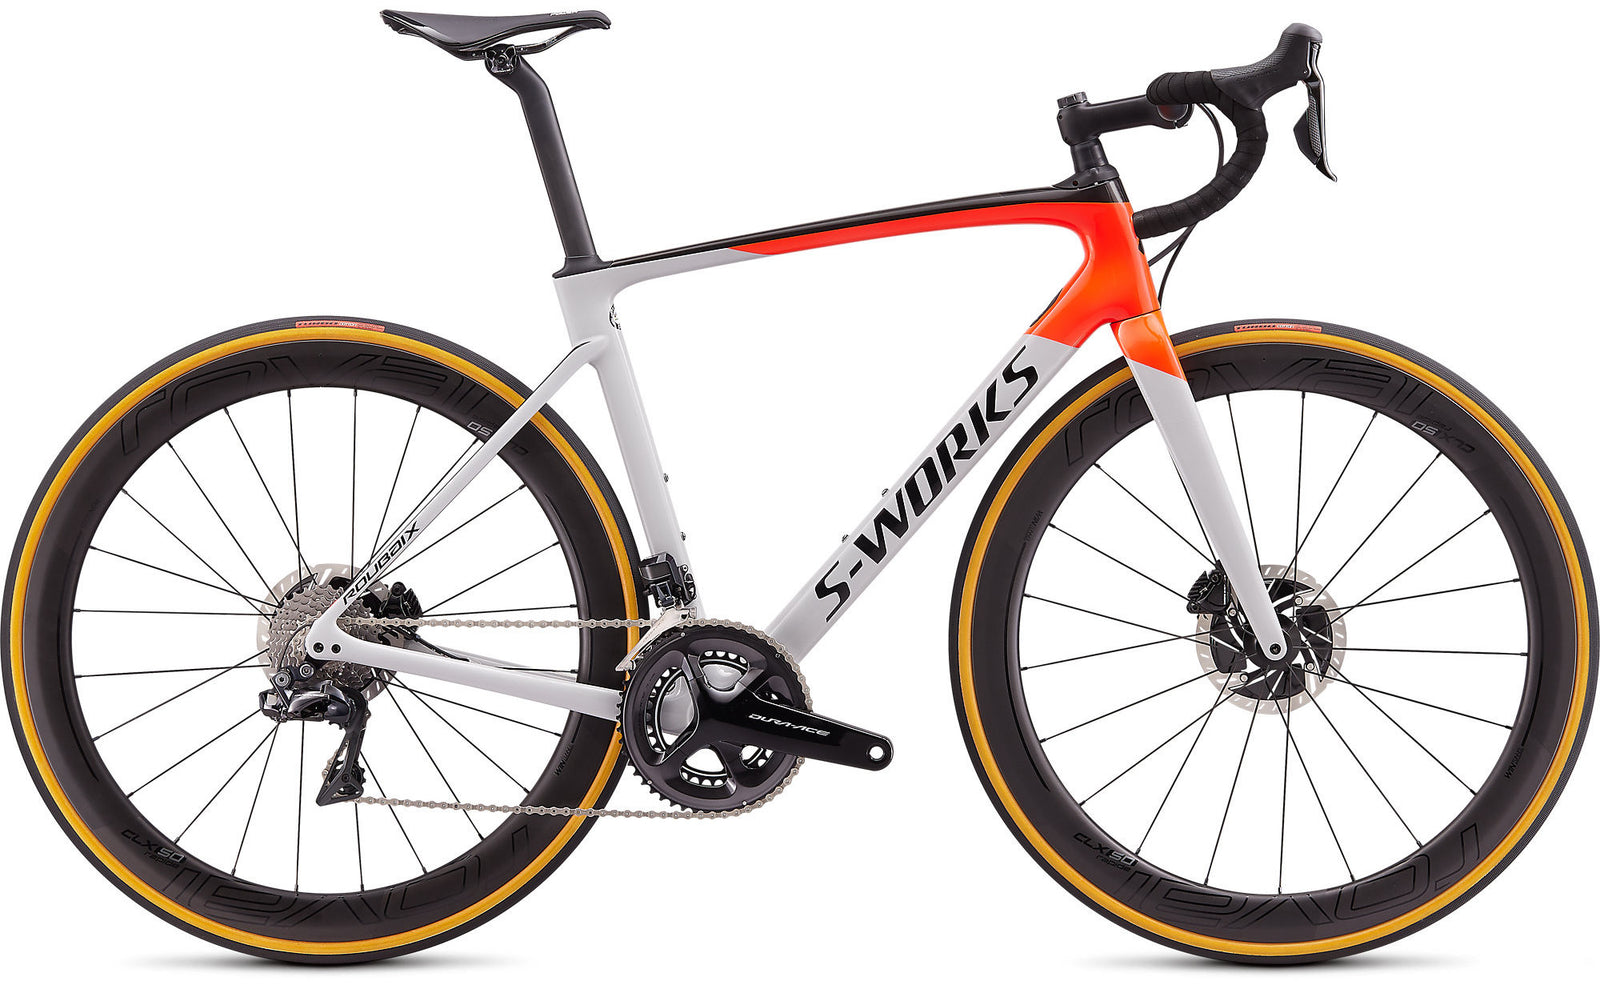 All-New S-Works Roubaix Dura-Ace Di2